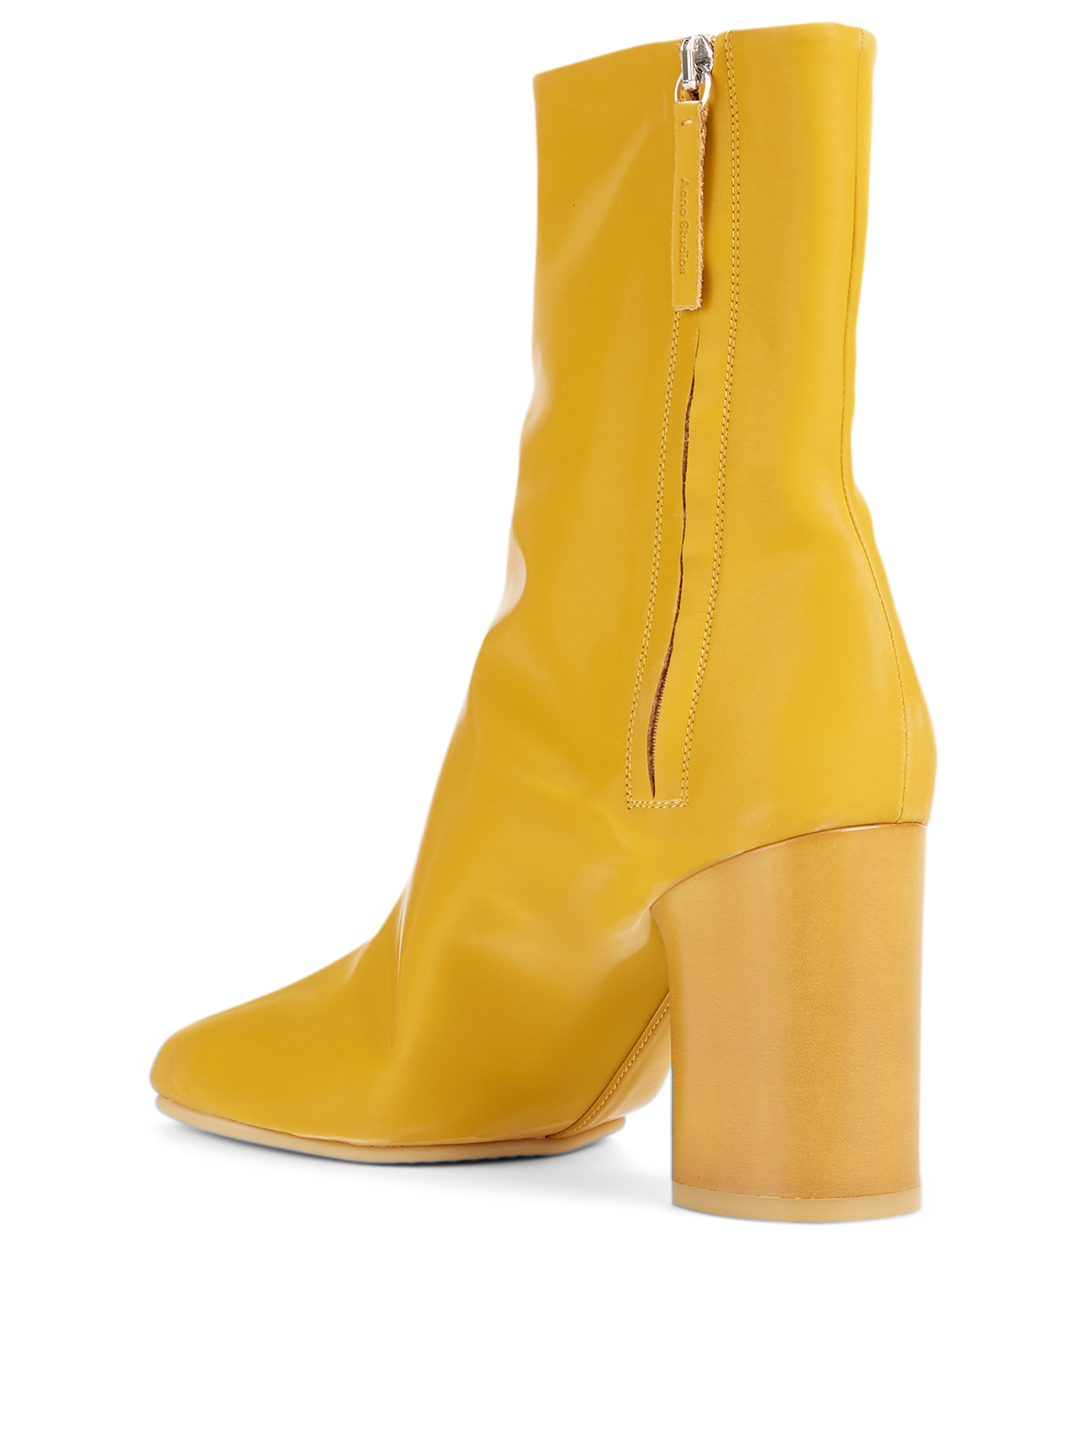 ACNE STUDIOS Vinyl Heeled Ankle Boots Women's Yellow